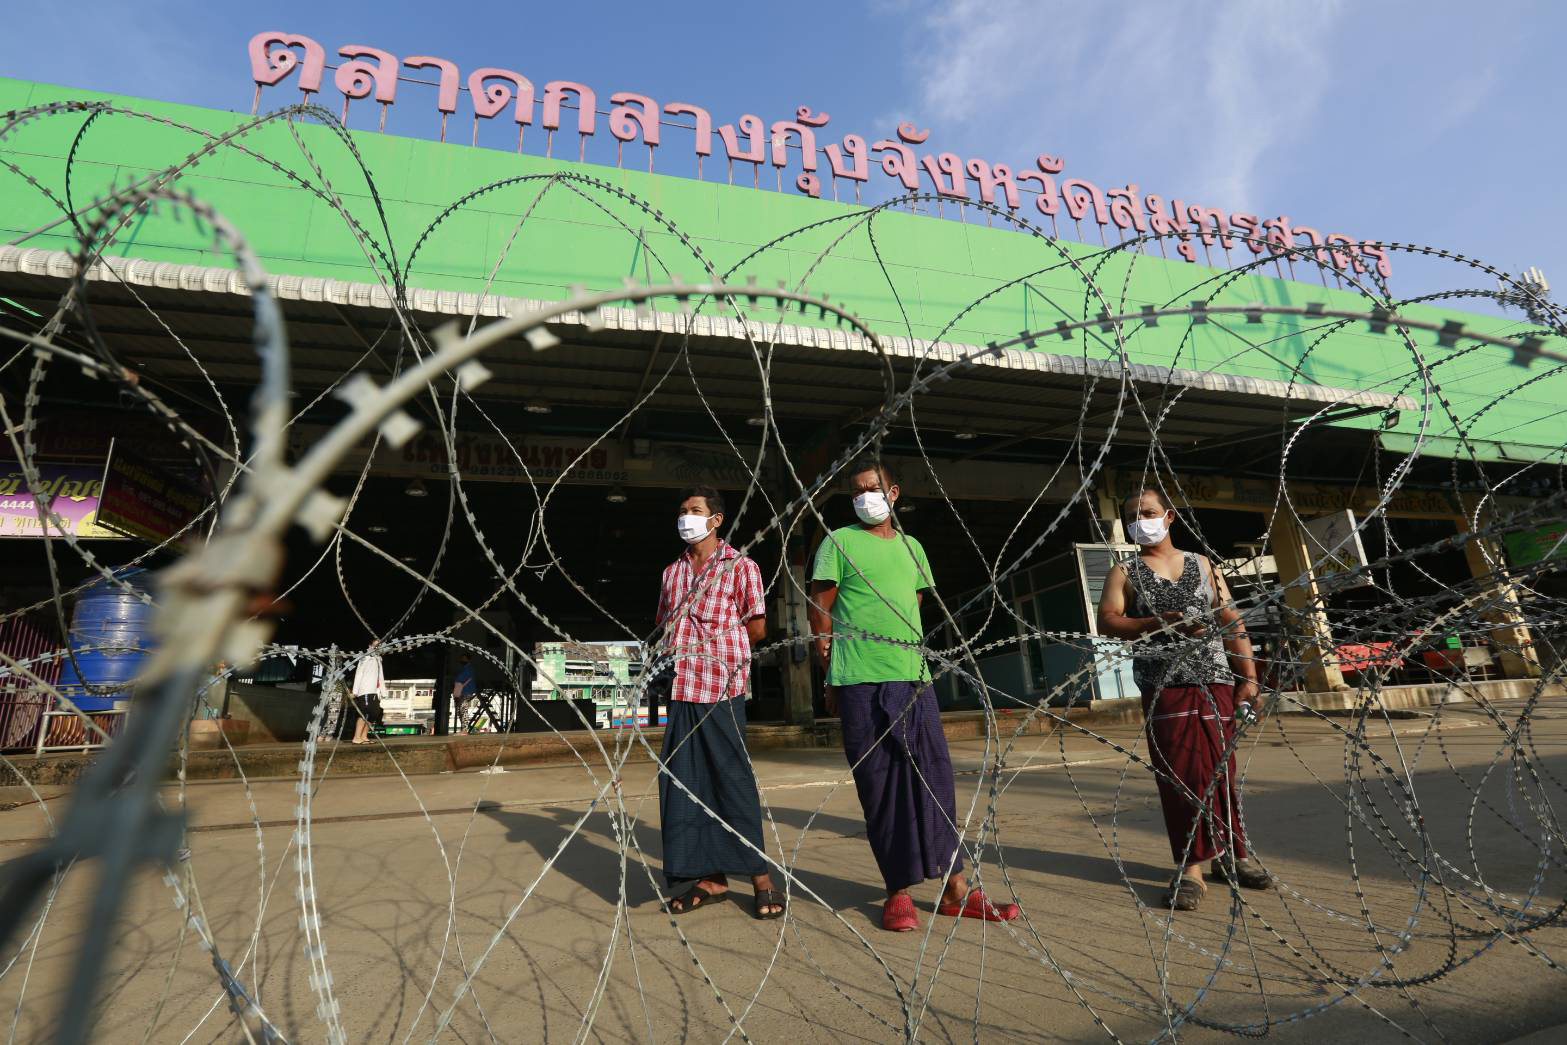 Migrant workers from Myanmar stand behind razor wire blocking the entrance to the Central Shrimp Market linked to an outbreak of Covid-19, in Muang district of Samut Sakhon on Sunday. (Photo by Arnun Chonmahatrakool)